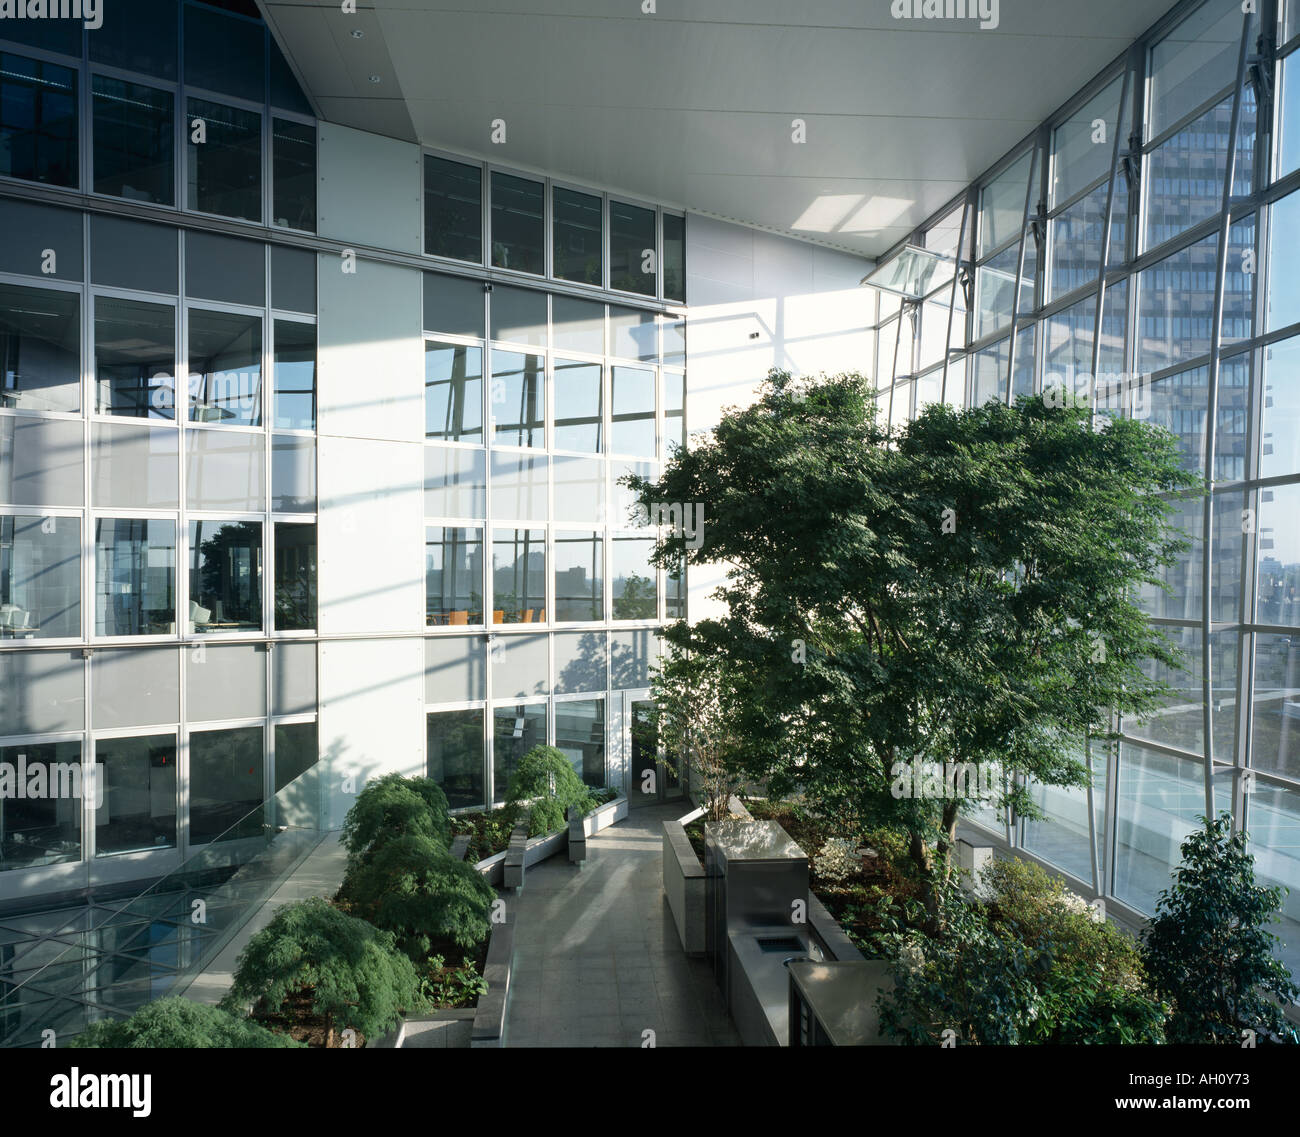 norman foster office. Commerzbank HQ Frankfurt 19911997 Architect Sir Norman Foster And Associates Office